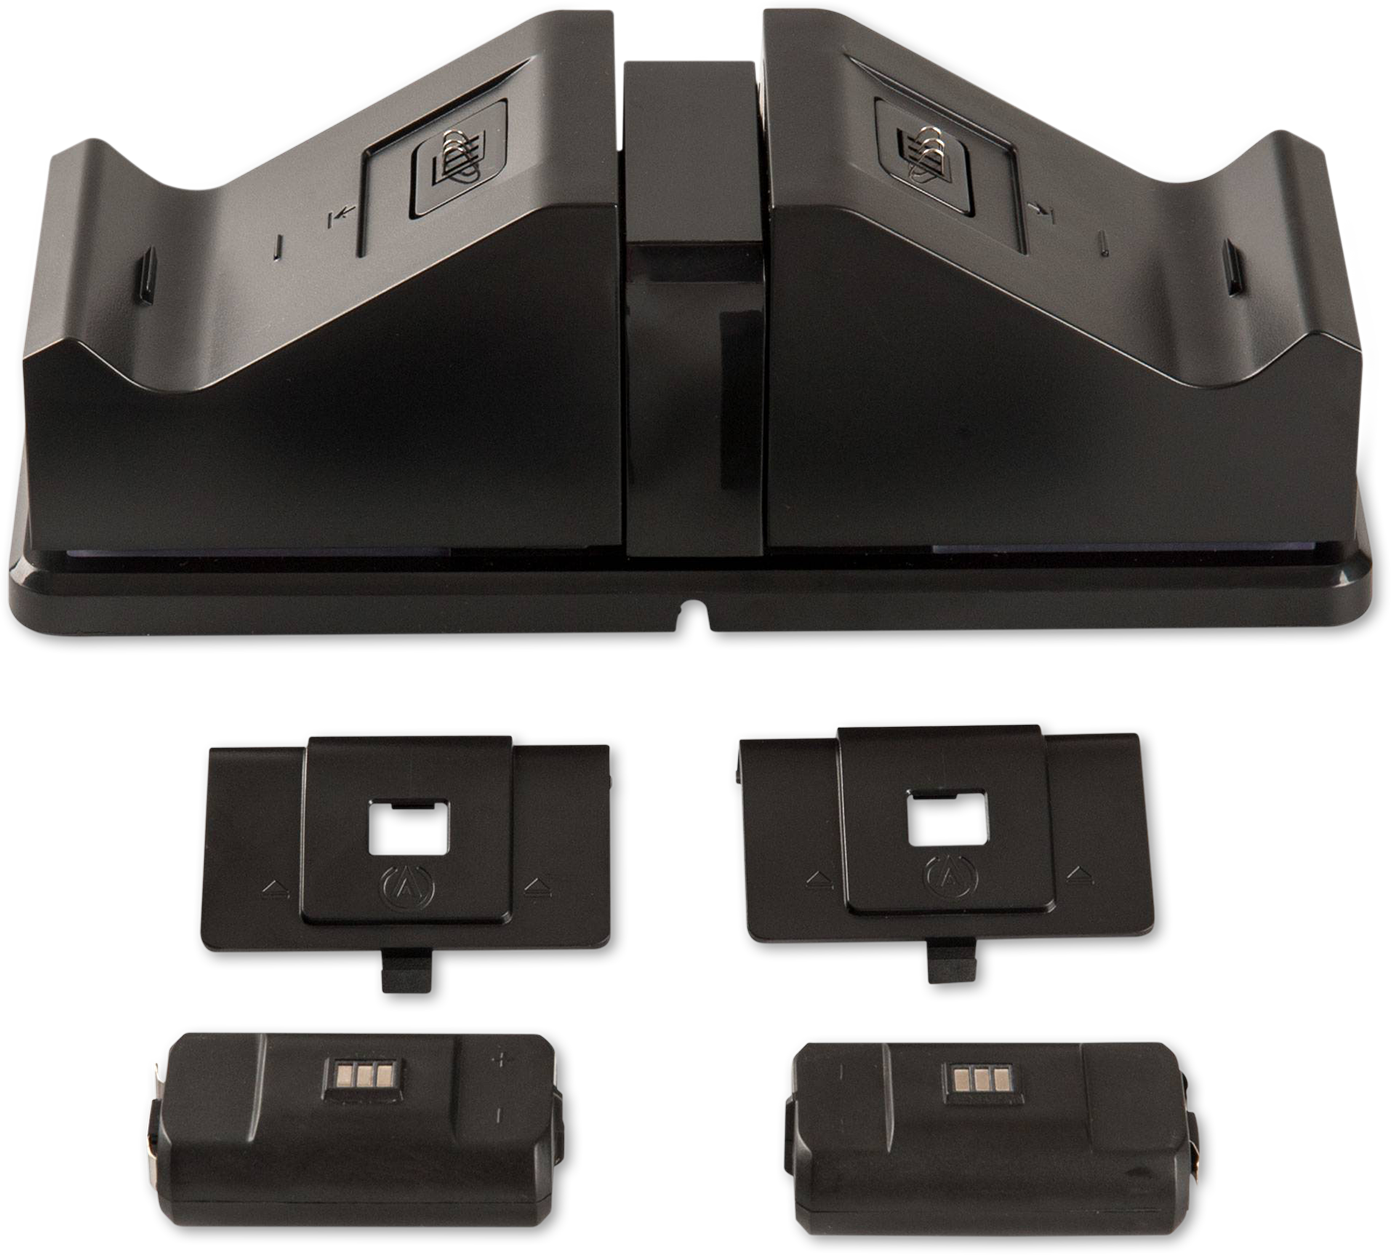 Image of BDA Dual Charging Station for Xbox One QG9-00465